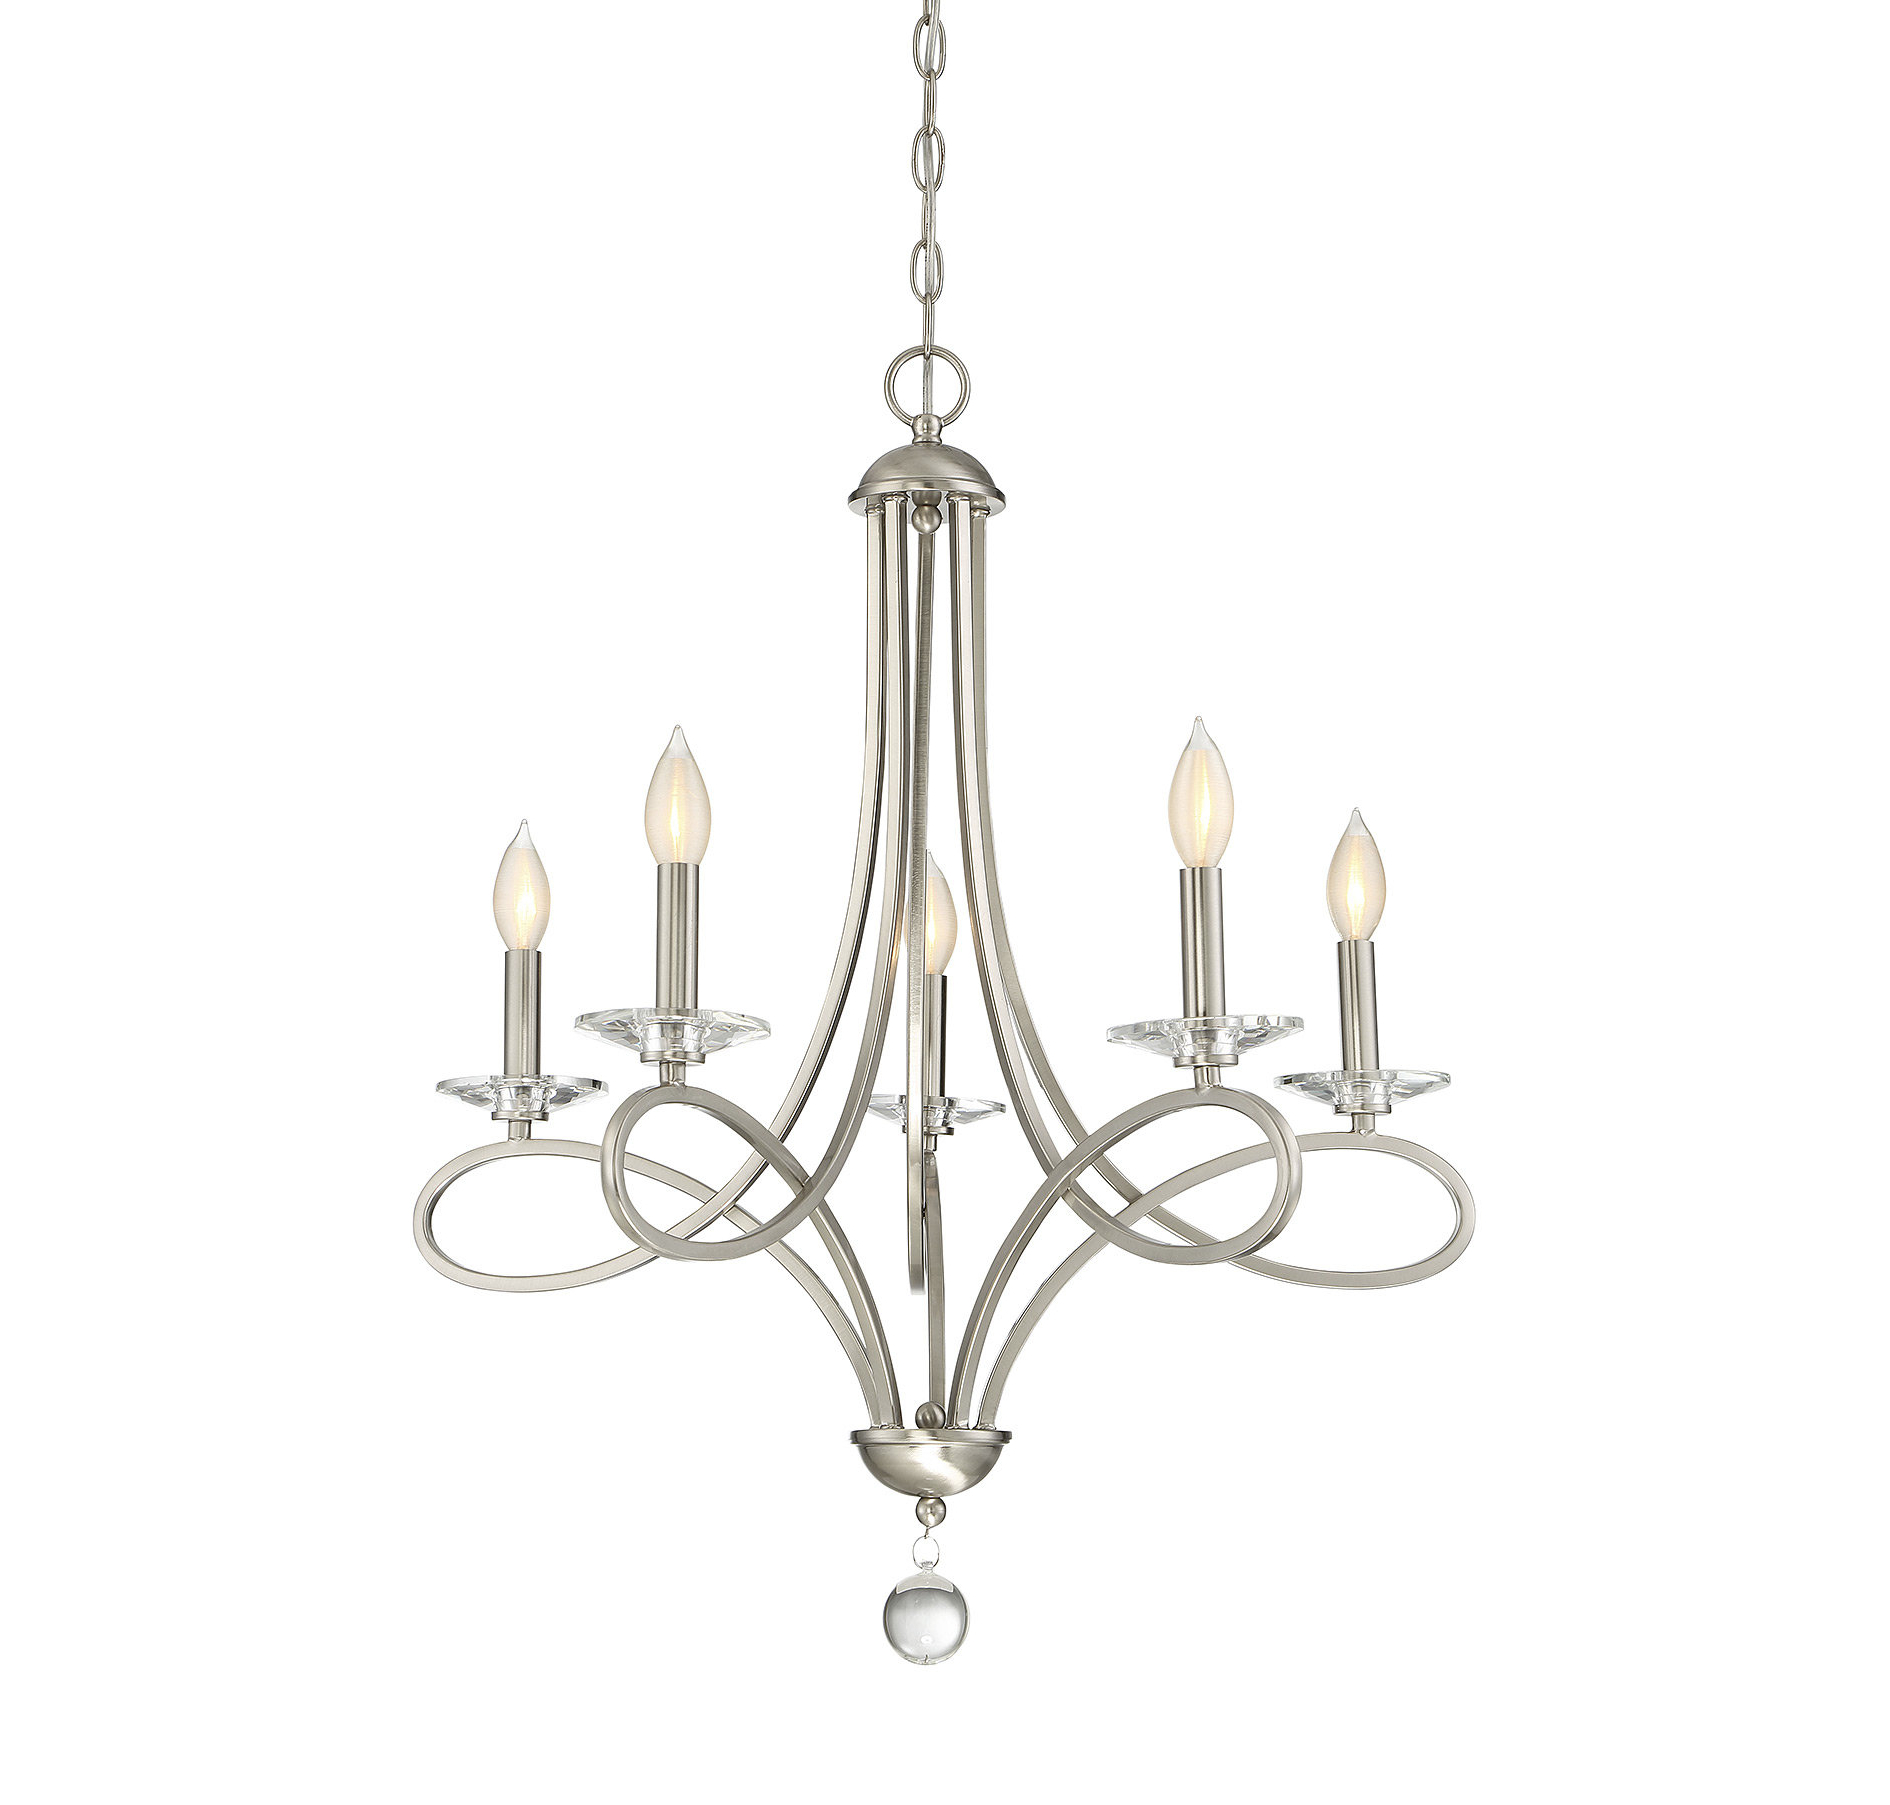 Willa Arlo Interiors Berger 5 Light Candle Style Chandelier Regarding Popular Florentina 5 Light Candle Style Chandeliers (Gallery 10 of 20)